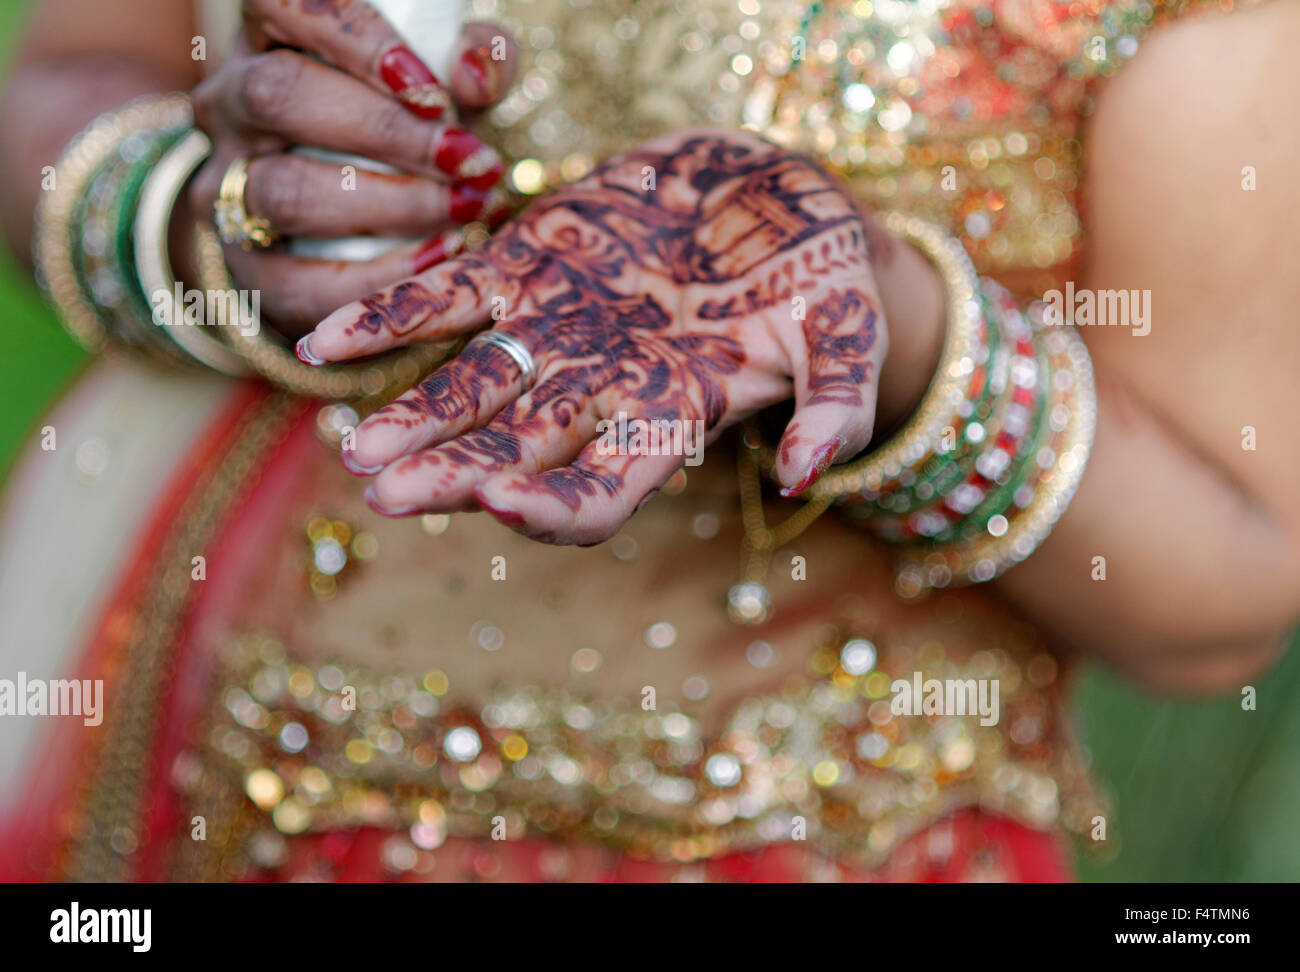 Indian bride with henna on her hands - Stock Image